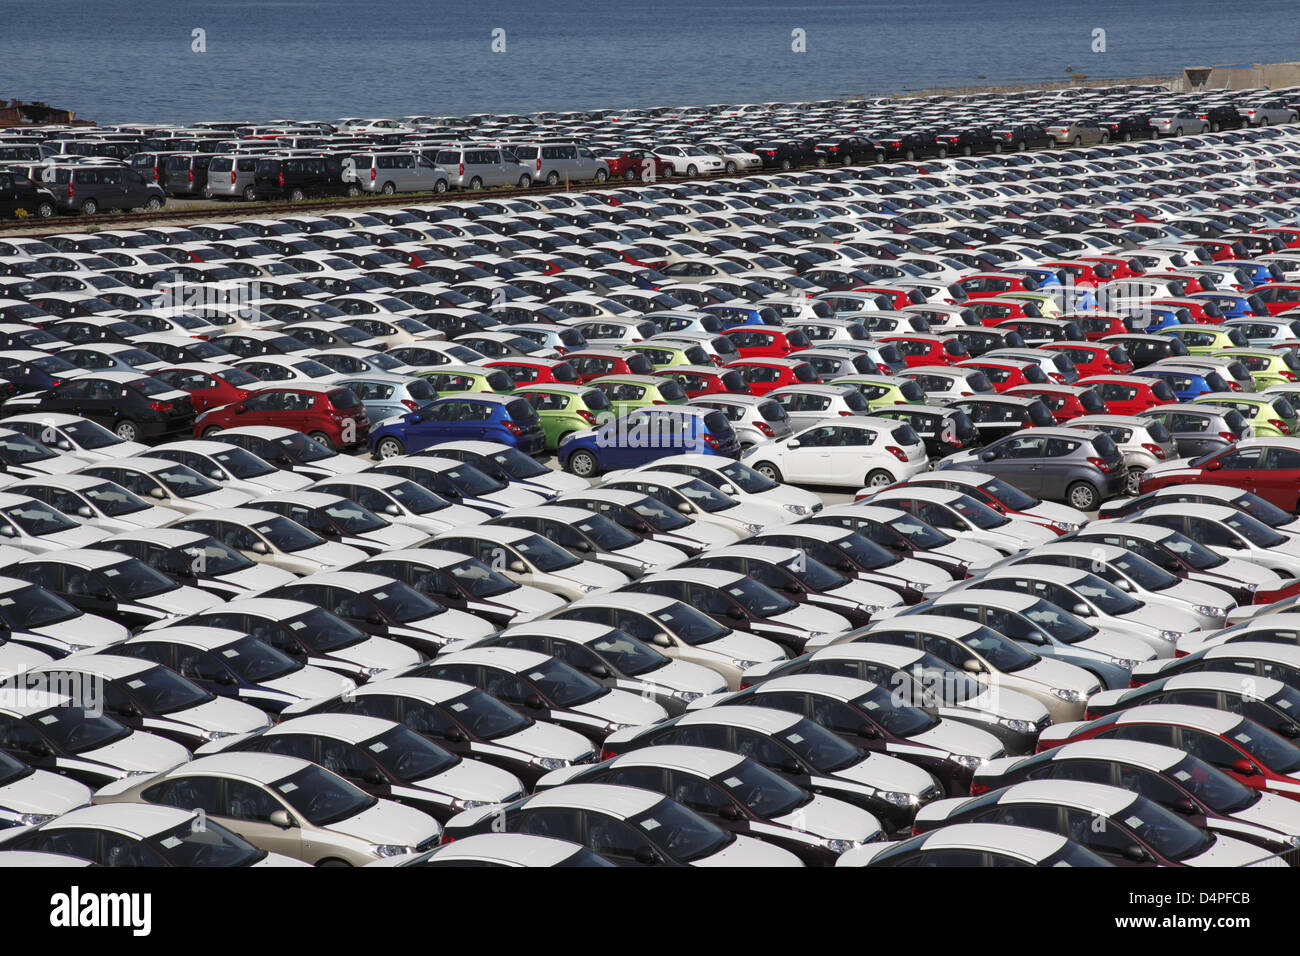 Imported new cars stand in the industrial harbour of Paldiski near Tallinn, Estonia, June 2009. Photo: Willy Matheisl - Stock Image